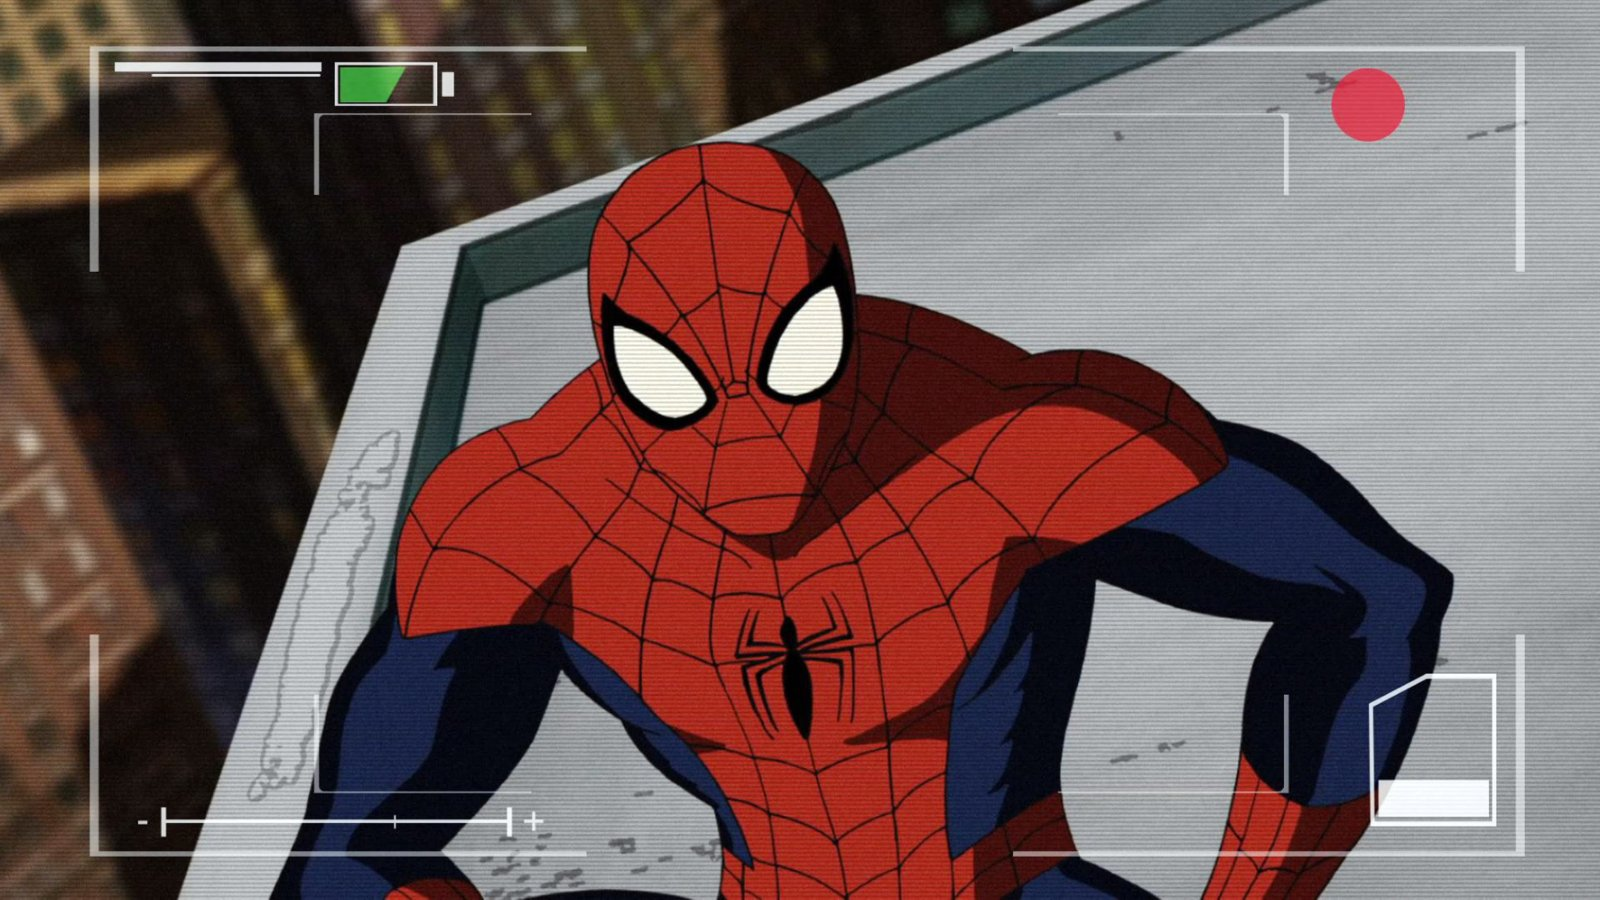 Ultimate spider man disney xd characters - photo#5